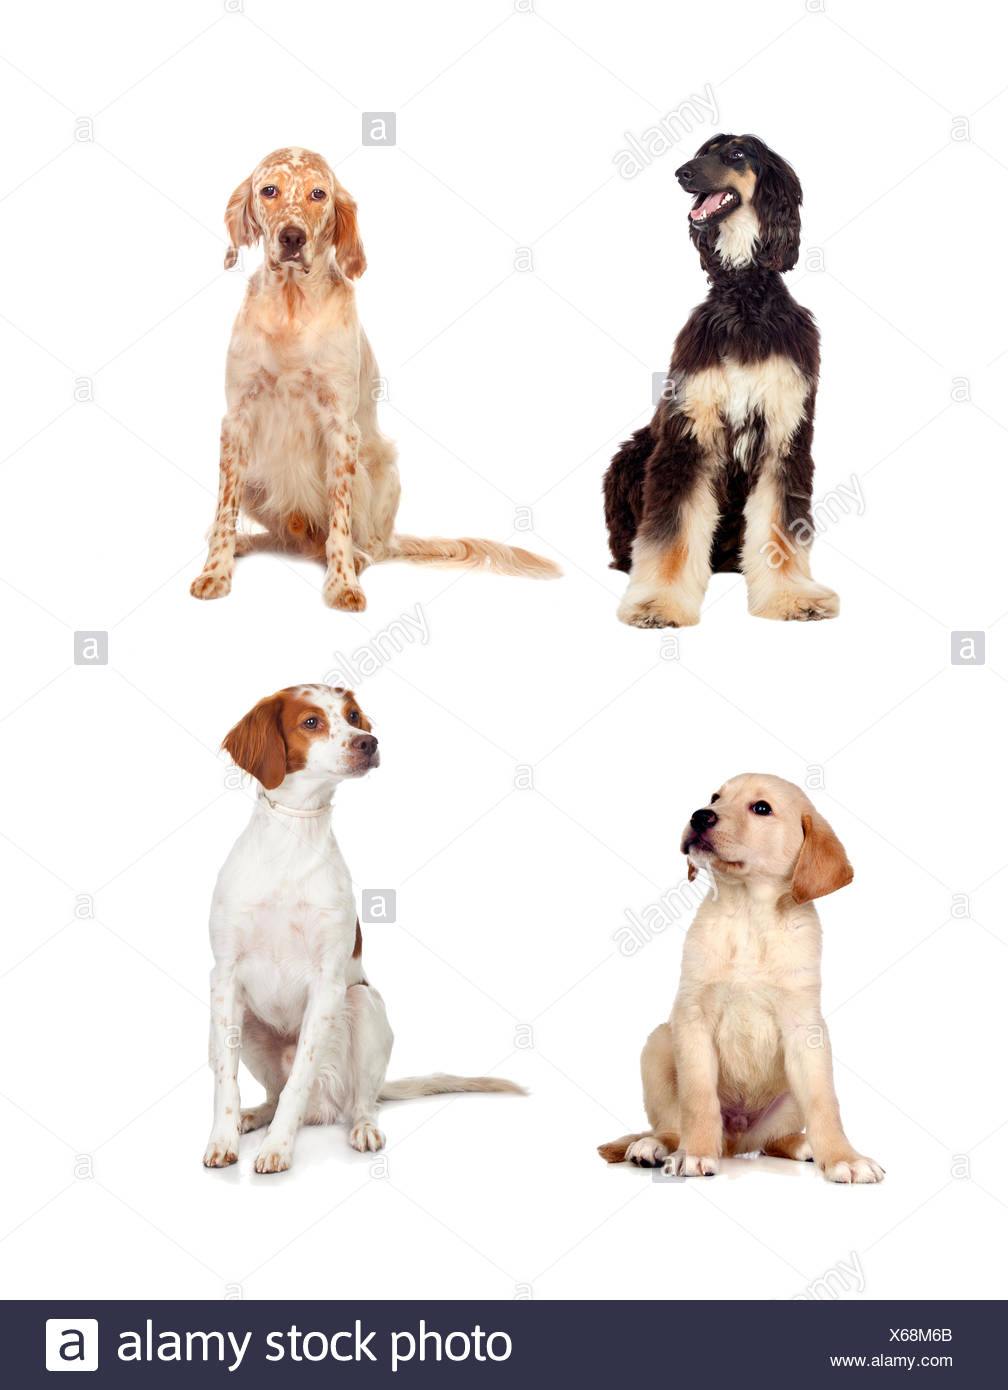 Four dogs of different races sitting isolated on white background - Stock Image